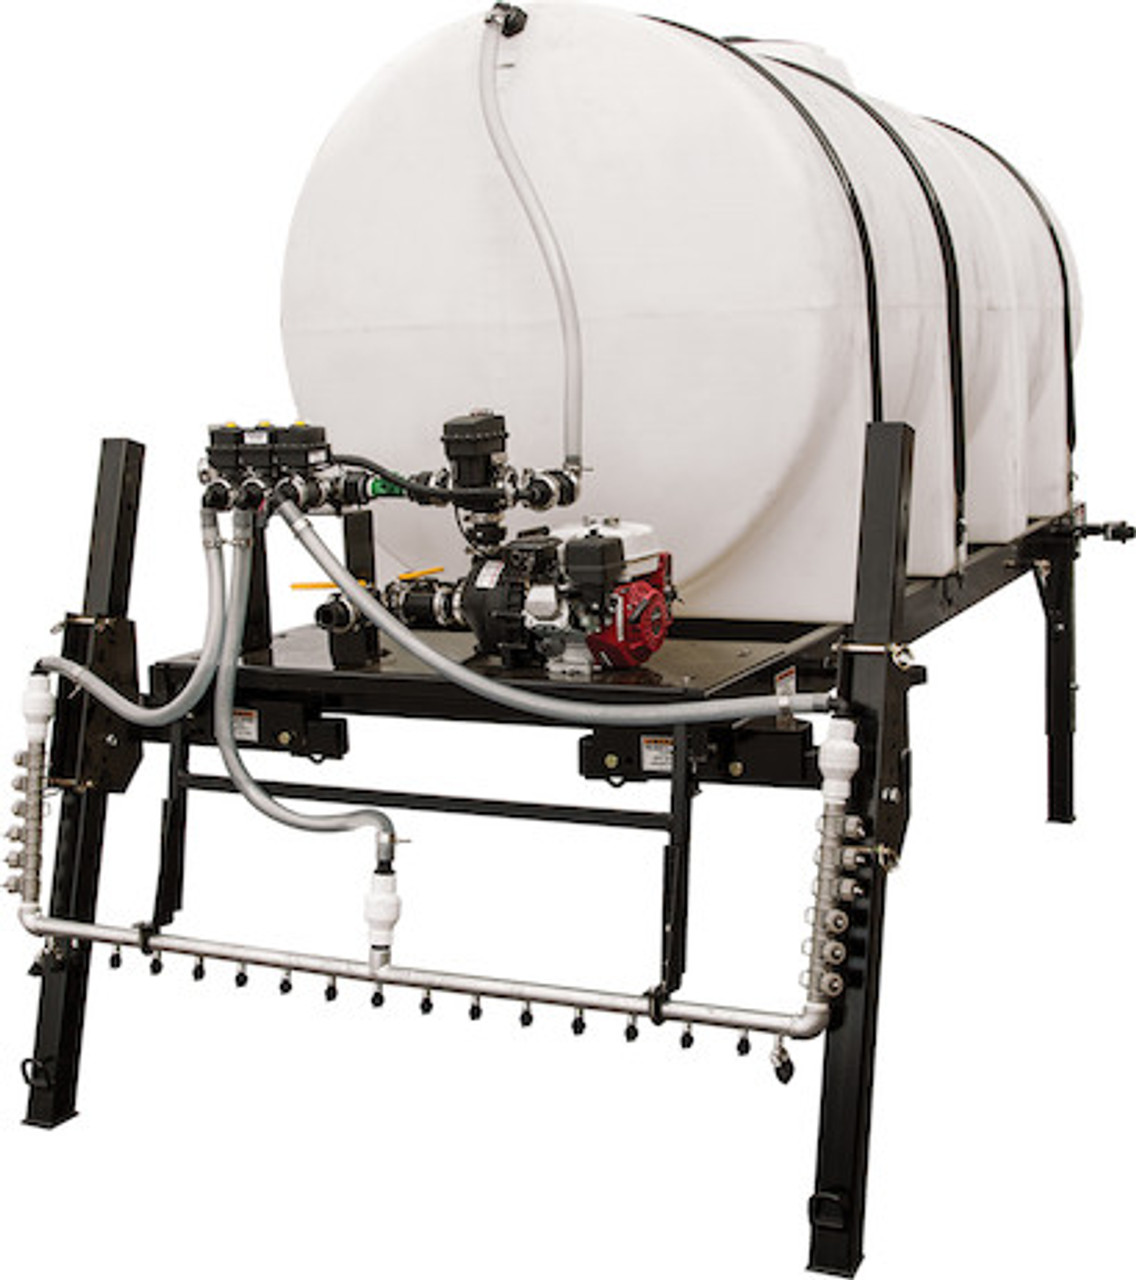 6191630 BUYERS SALTDOGG 1750 Gallon Gas-Powered Anti-Ice System With One-Lane Spray Bar And Manual Application Rate Control